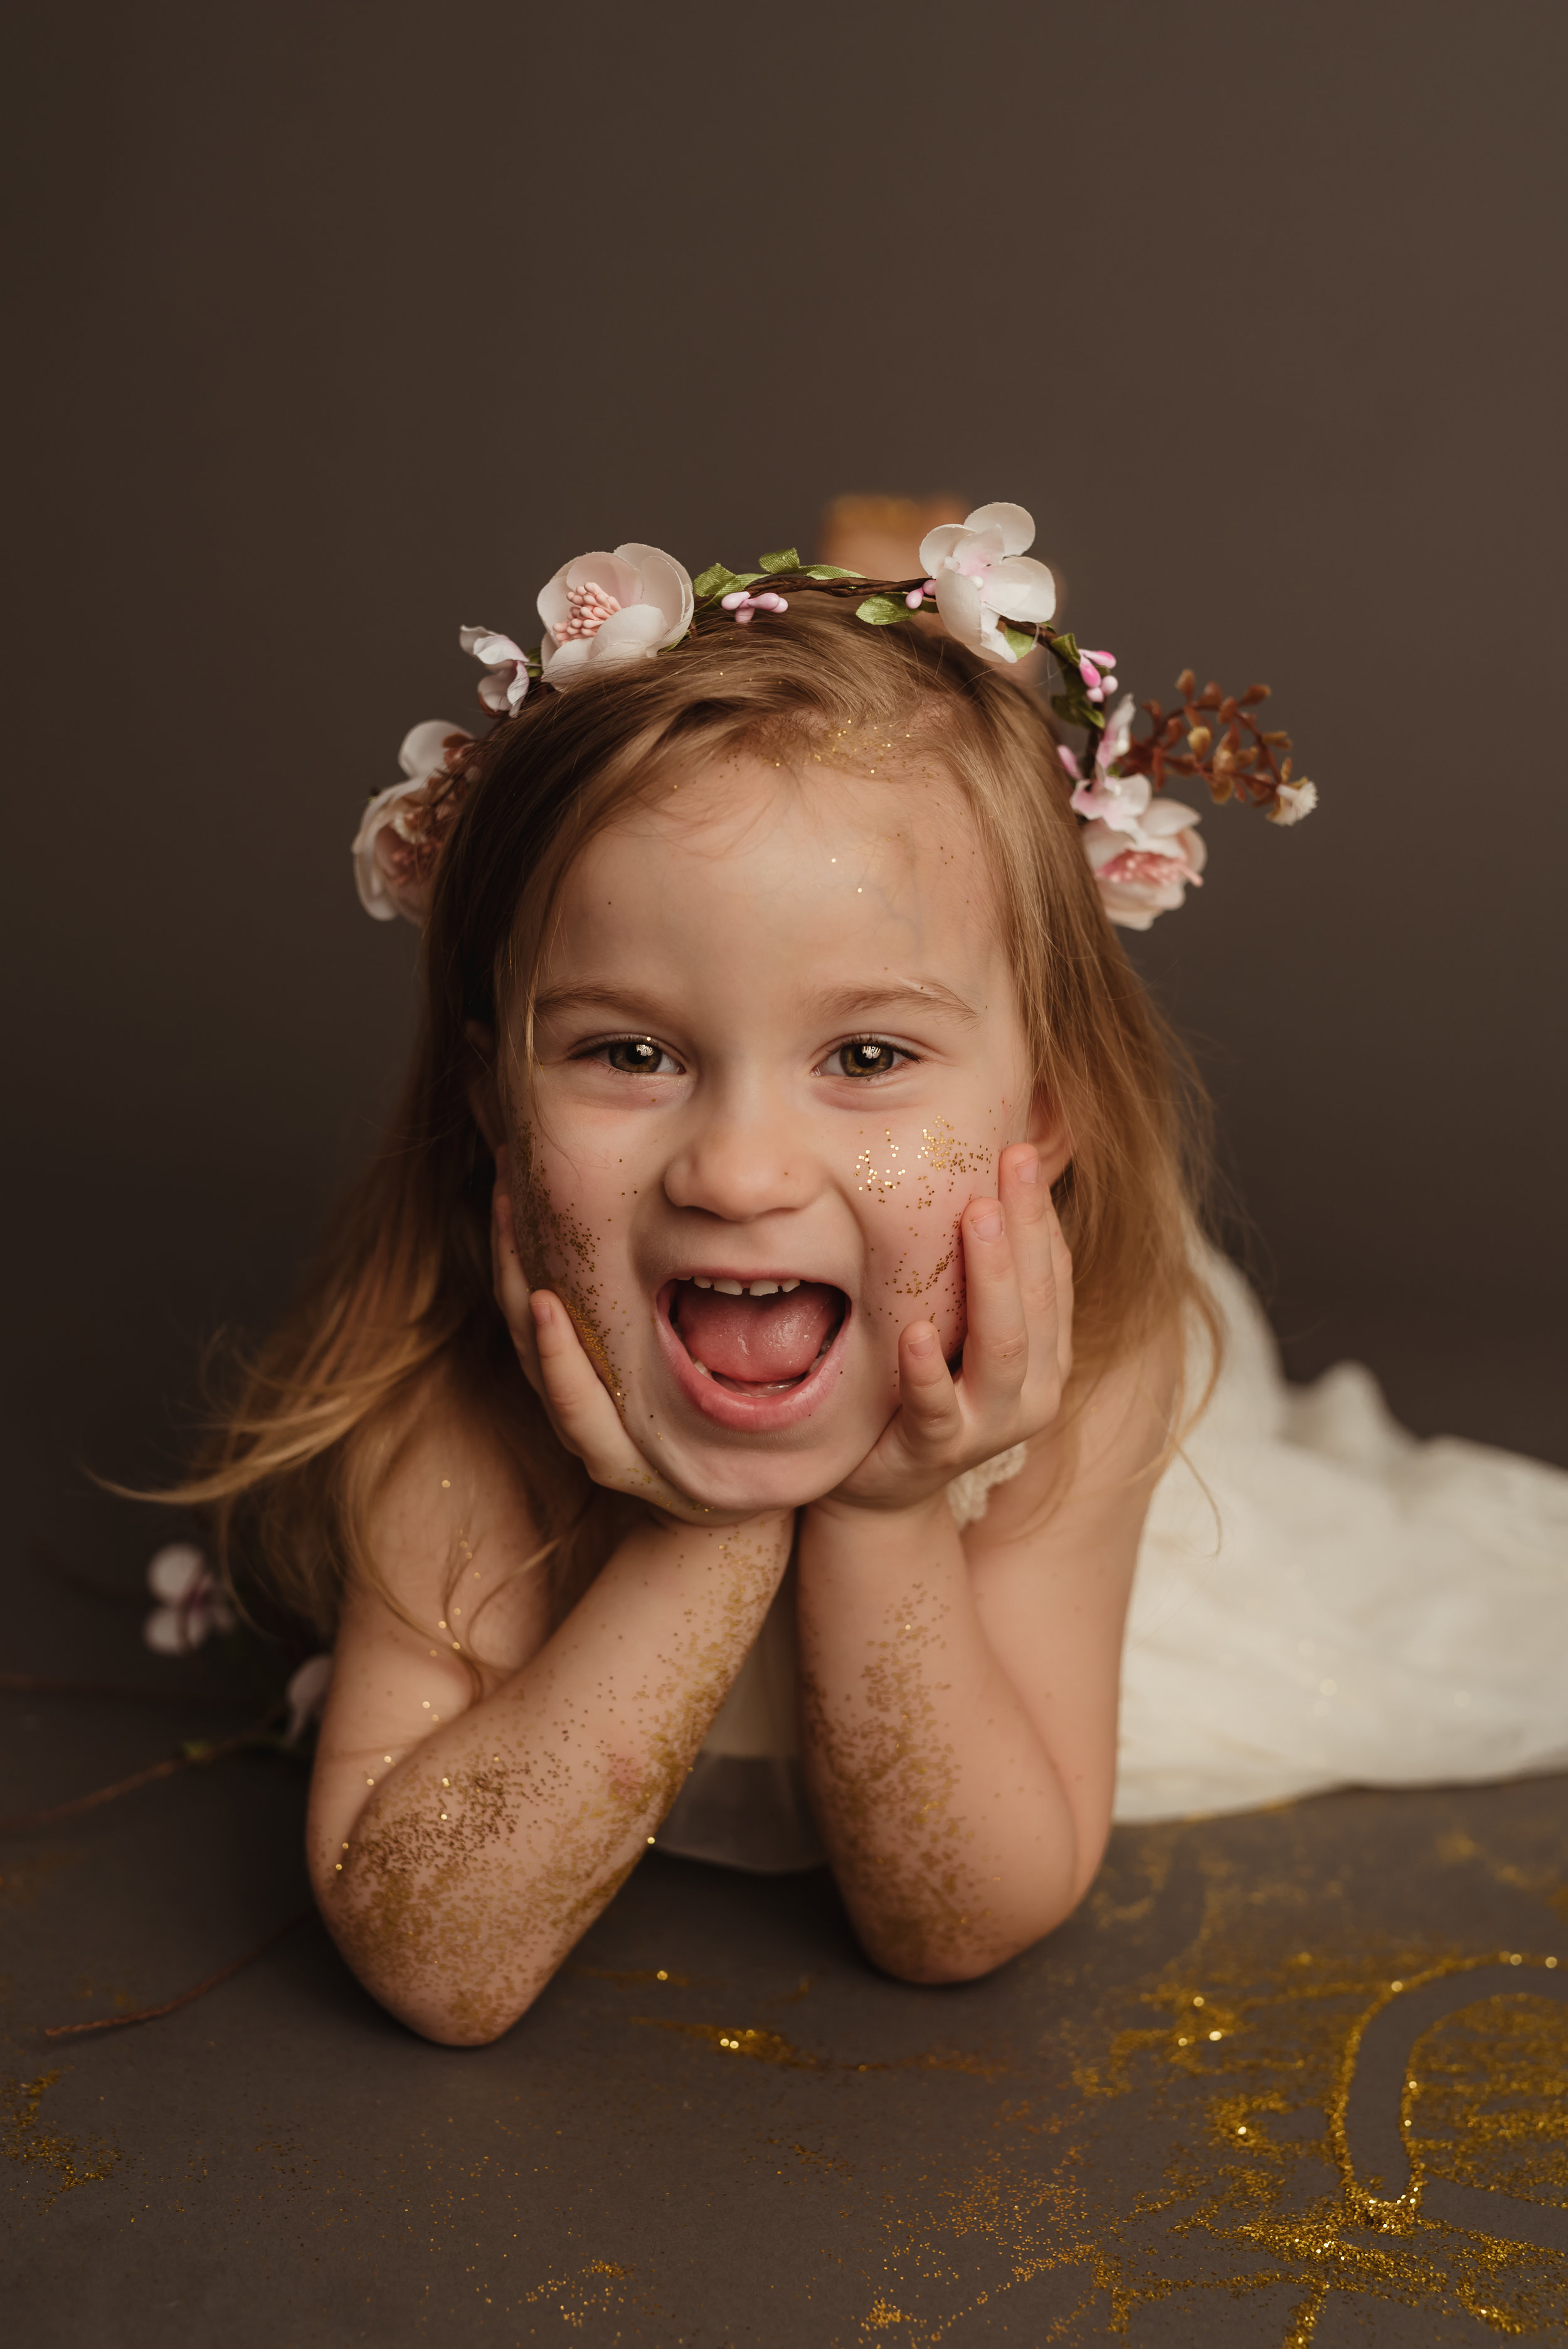 with junebug photography studio in manhattan, ks for a glitter session with a happy little girl